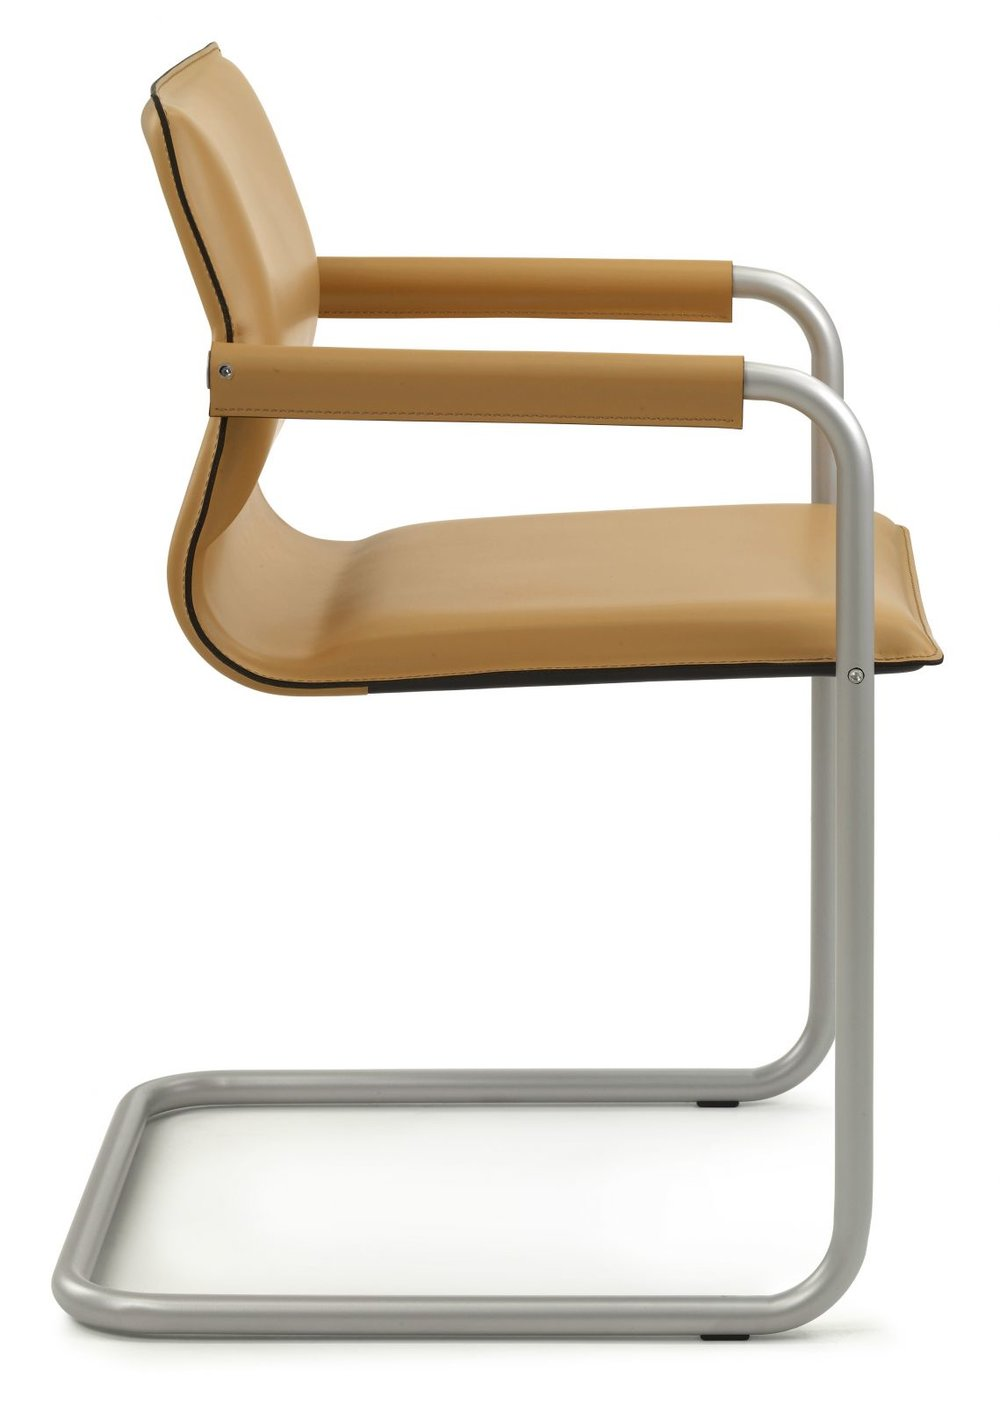 modern-office-furniture-chairs-Italian-designer-furniture (2).jpg